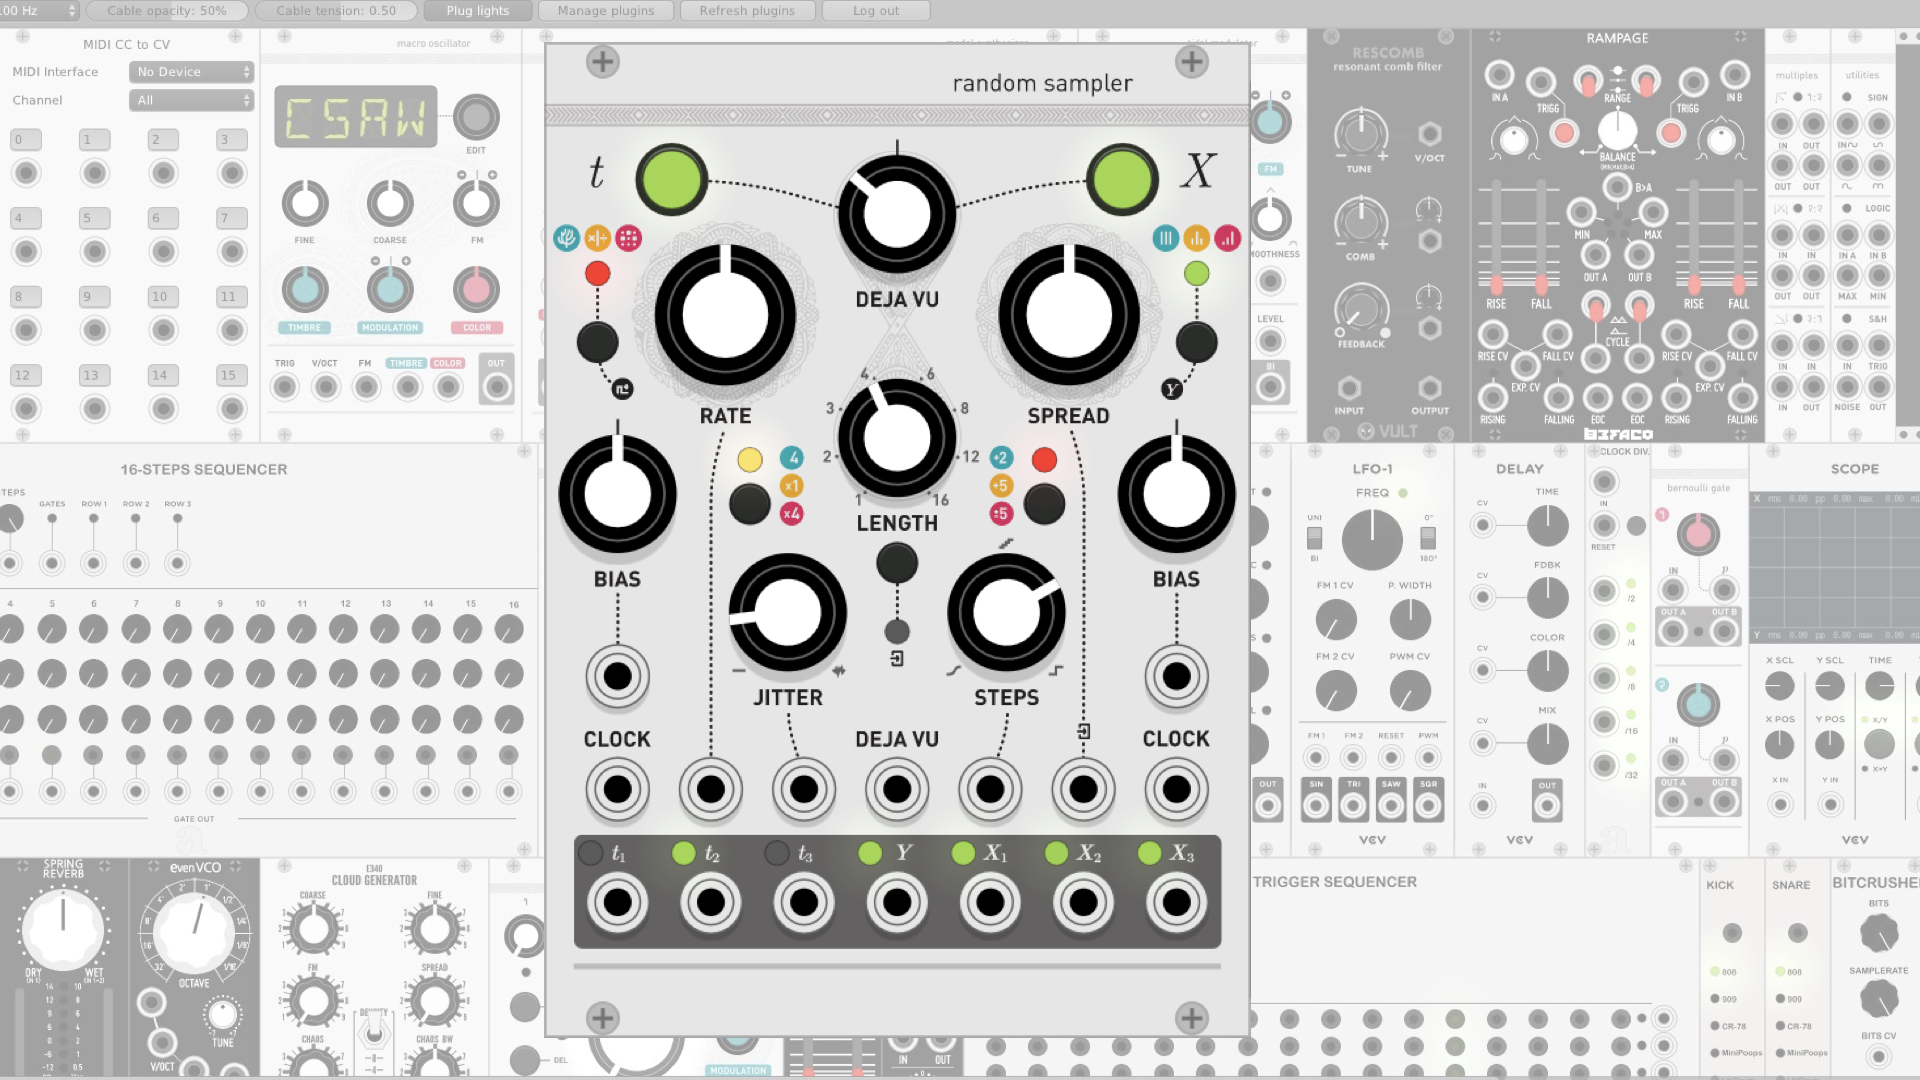 vcv rack released random sampler module aka marbles